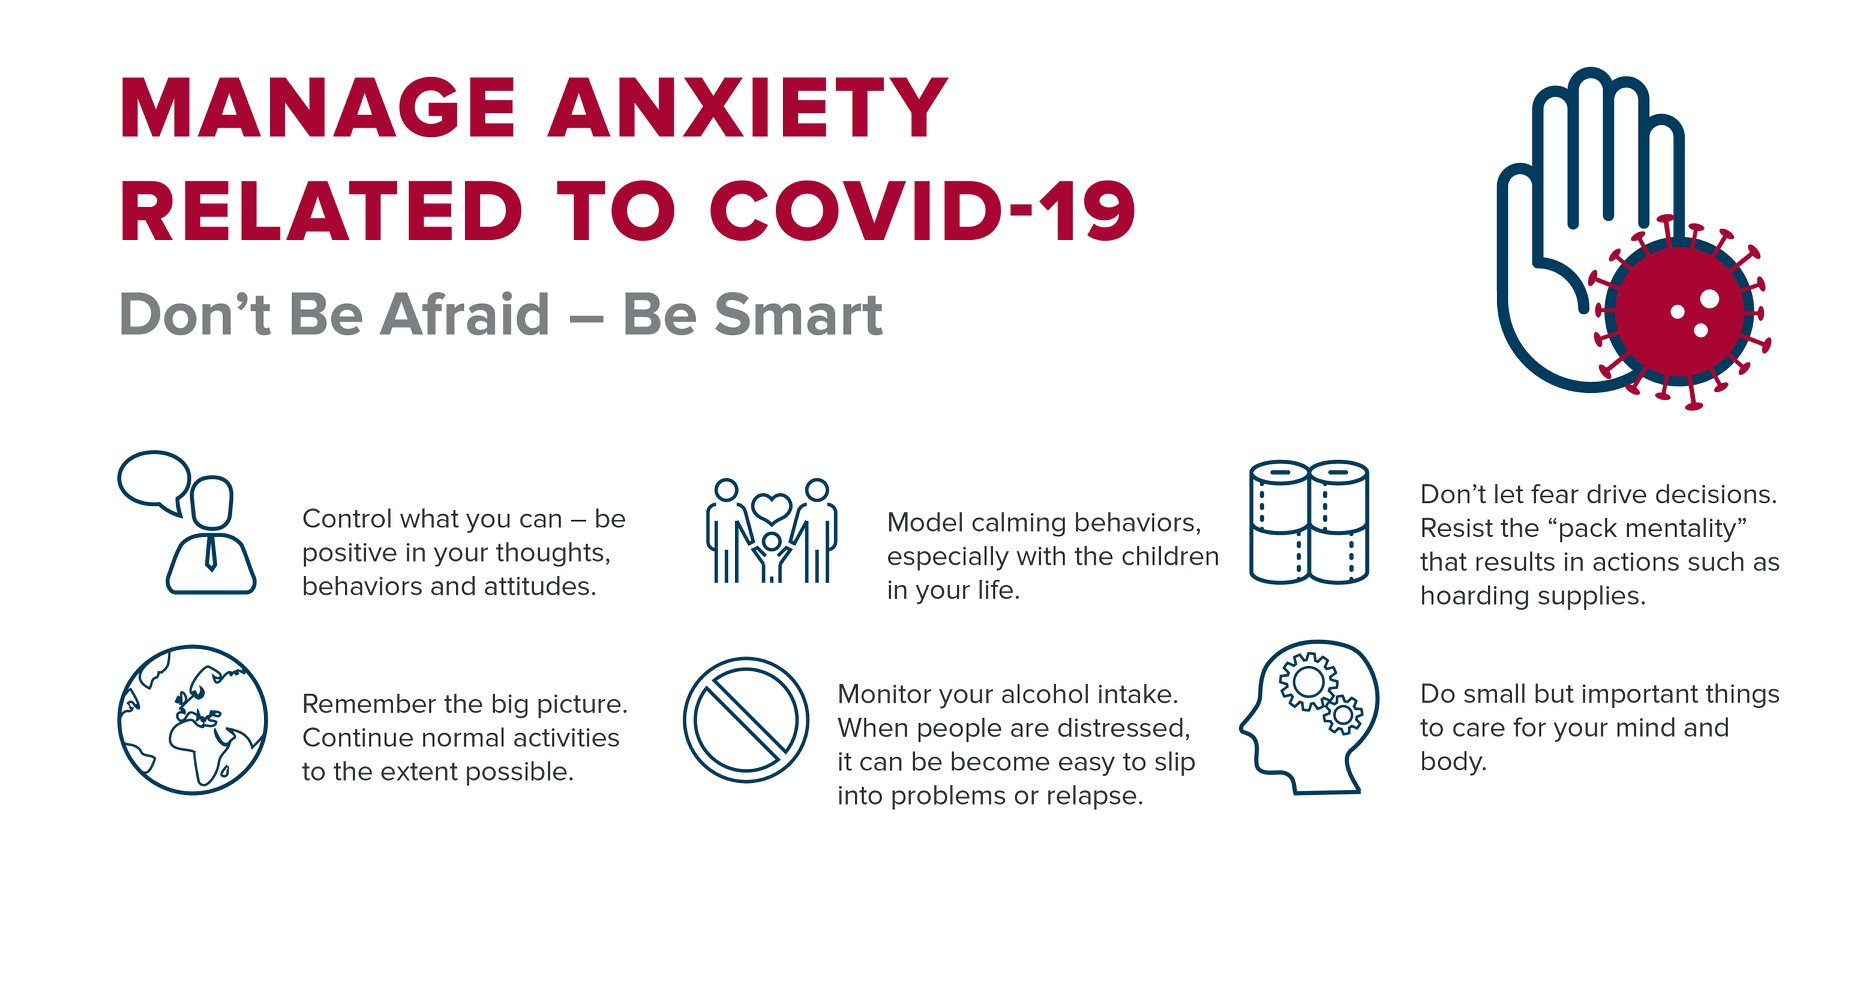 MANAGE ANXIETY-DON'T BE AFRAID-BE SMART